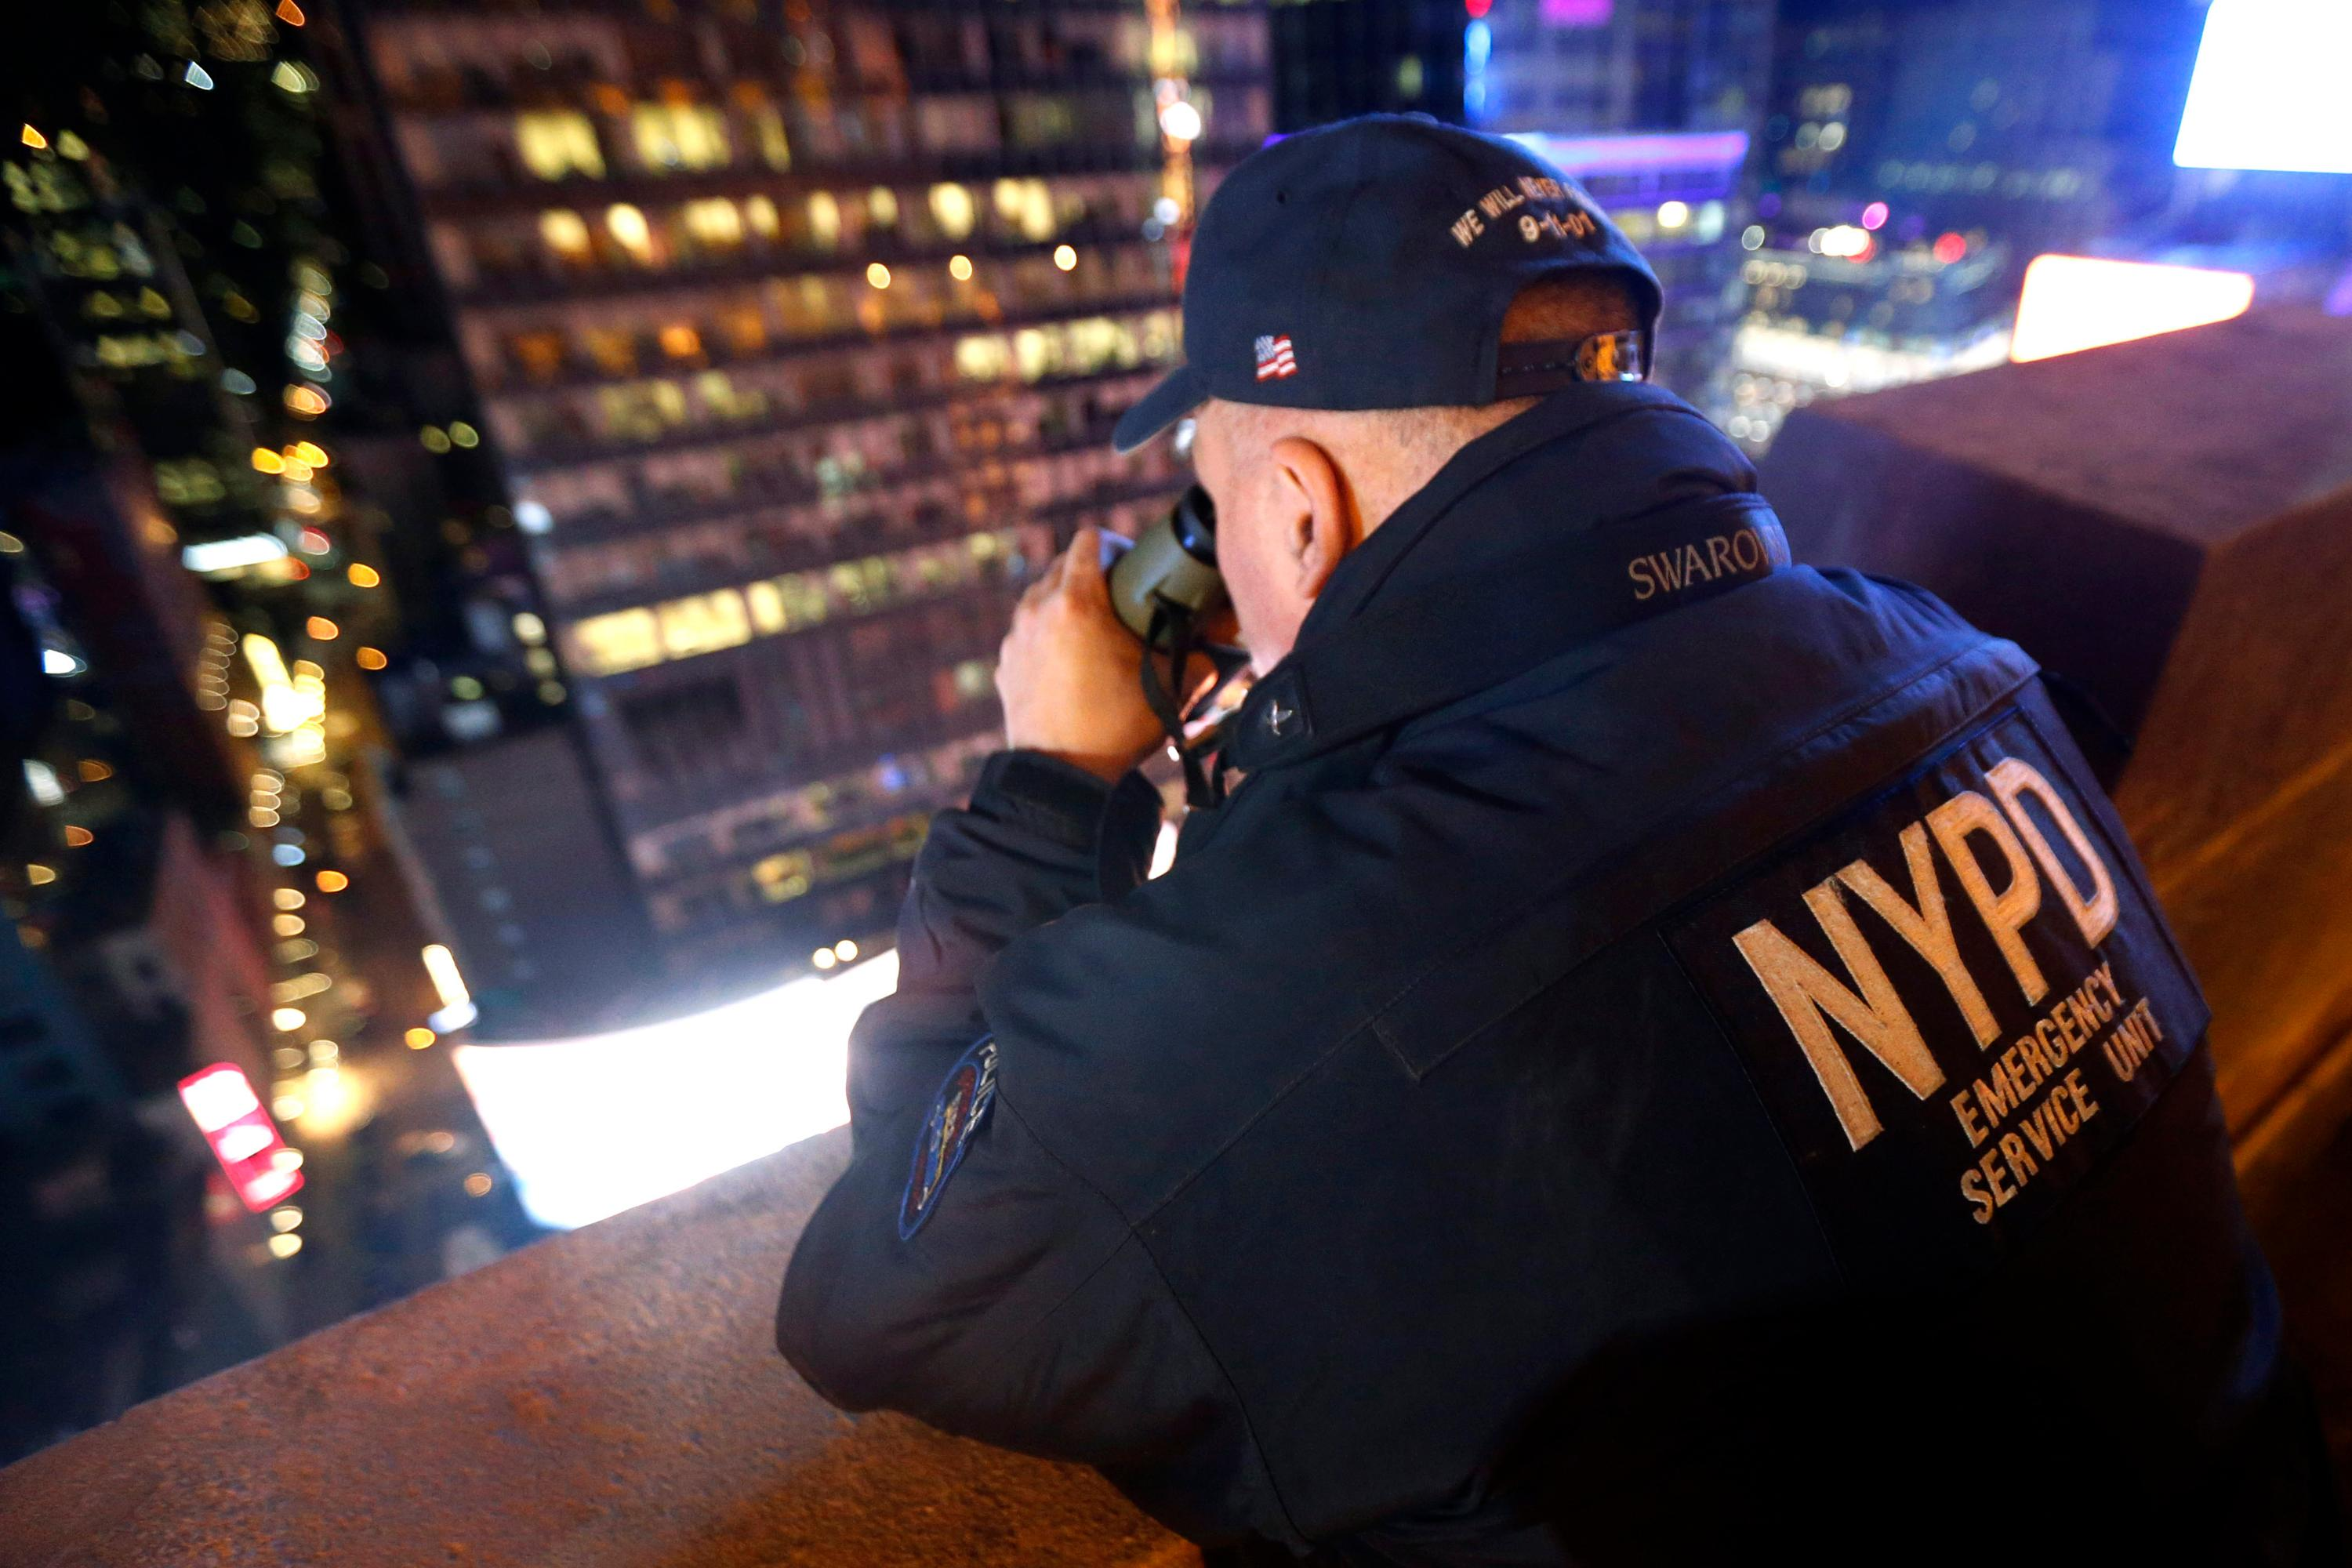 FILE - In this Dec. 31, 2015 file photo, a New York police officer uses binoculars while keeping watch from a rooftop along Times Square during New Year's Eve celebrations in New York. A Las Vegas shooting from a high-rise hotel that killed dozens of people in a packed concert below on Sunday, Oct. 1, 2017, has forced other cities to examine their tactics for dealing with this kind of nightmare scenario. In New York, which hosts Times Square New Year's Eve and other events surrounded by high-rises, police say they use rooftop snipers to scan for threats, and make security sweeps of nearby hotels. (AP Photo/Julio Cortez, File)